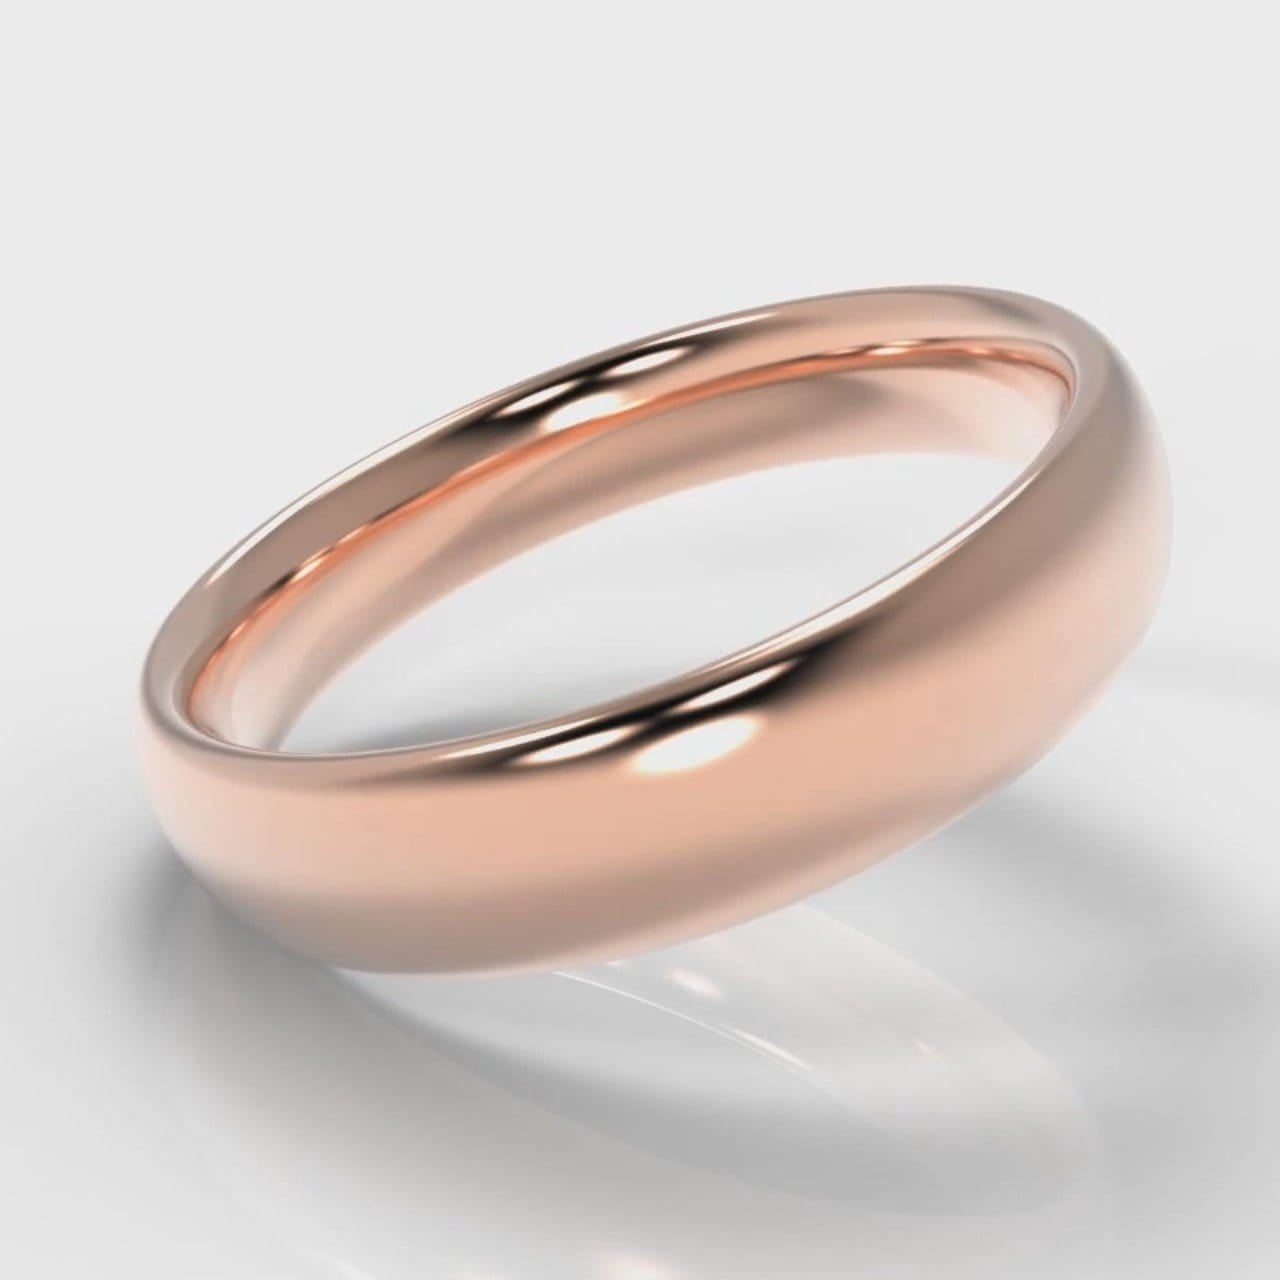 5mm Court Shaped Comfort Fit Wedding Ring - Rose Gold